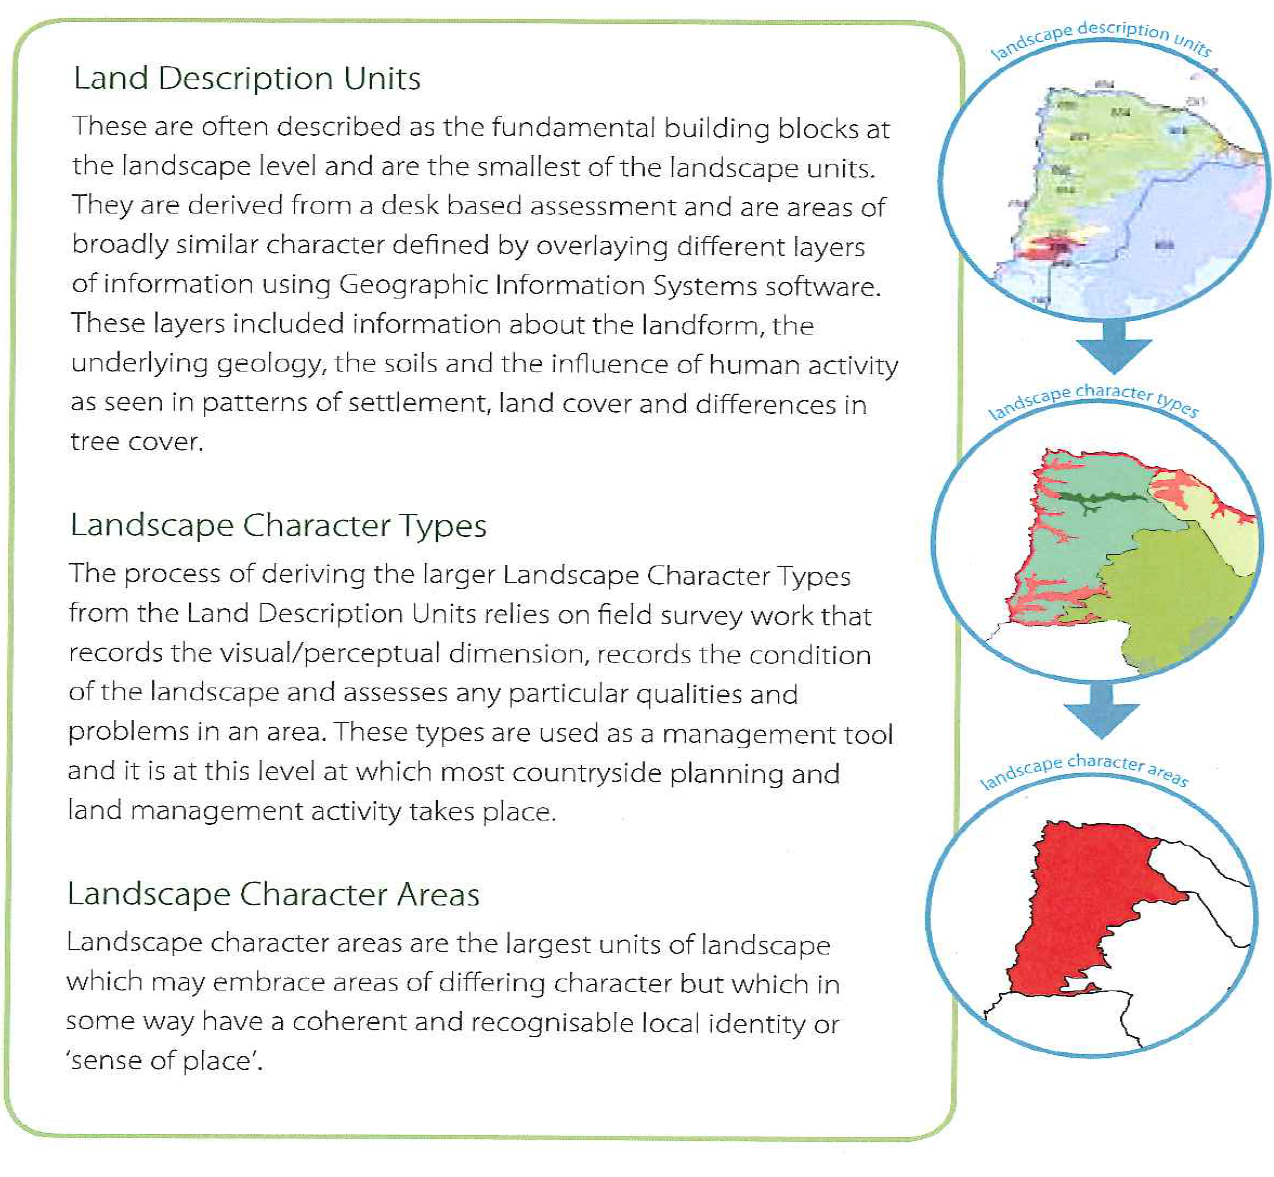 Landscape description units, character types and areas